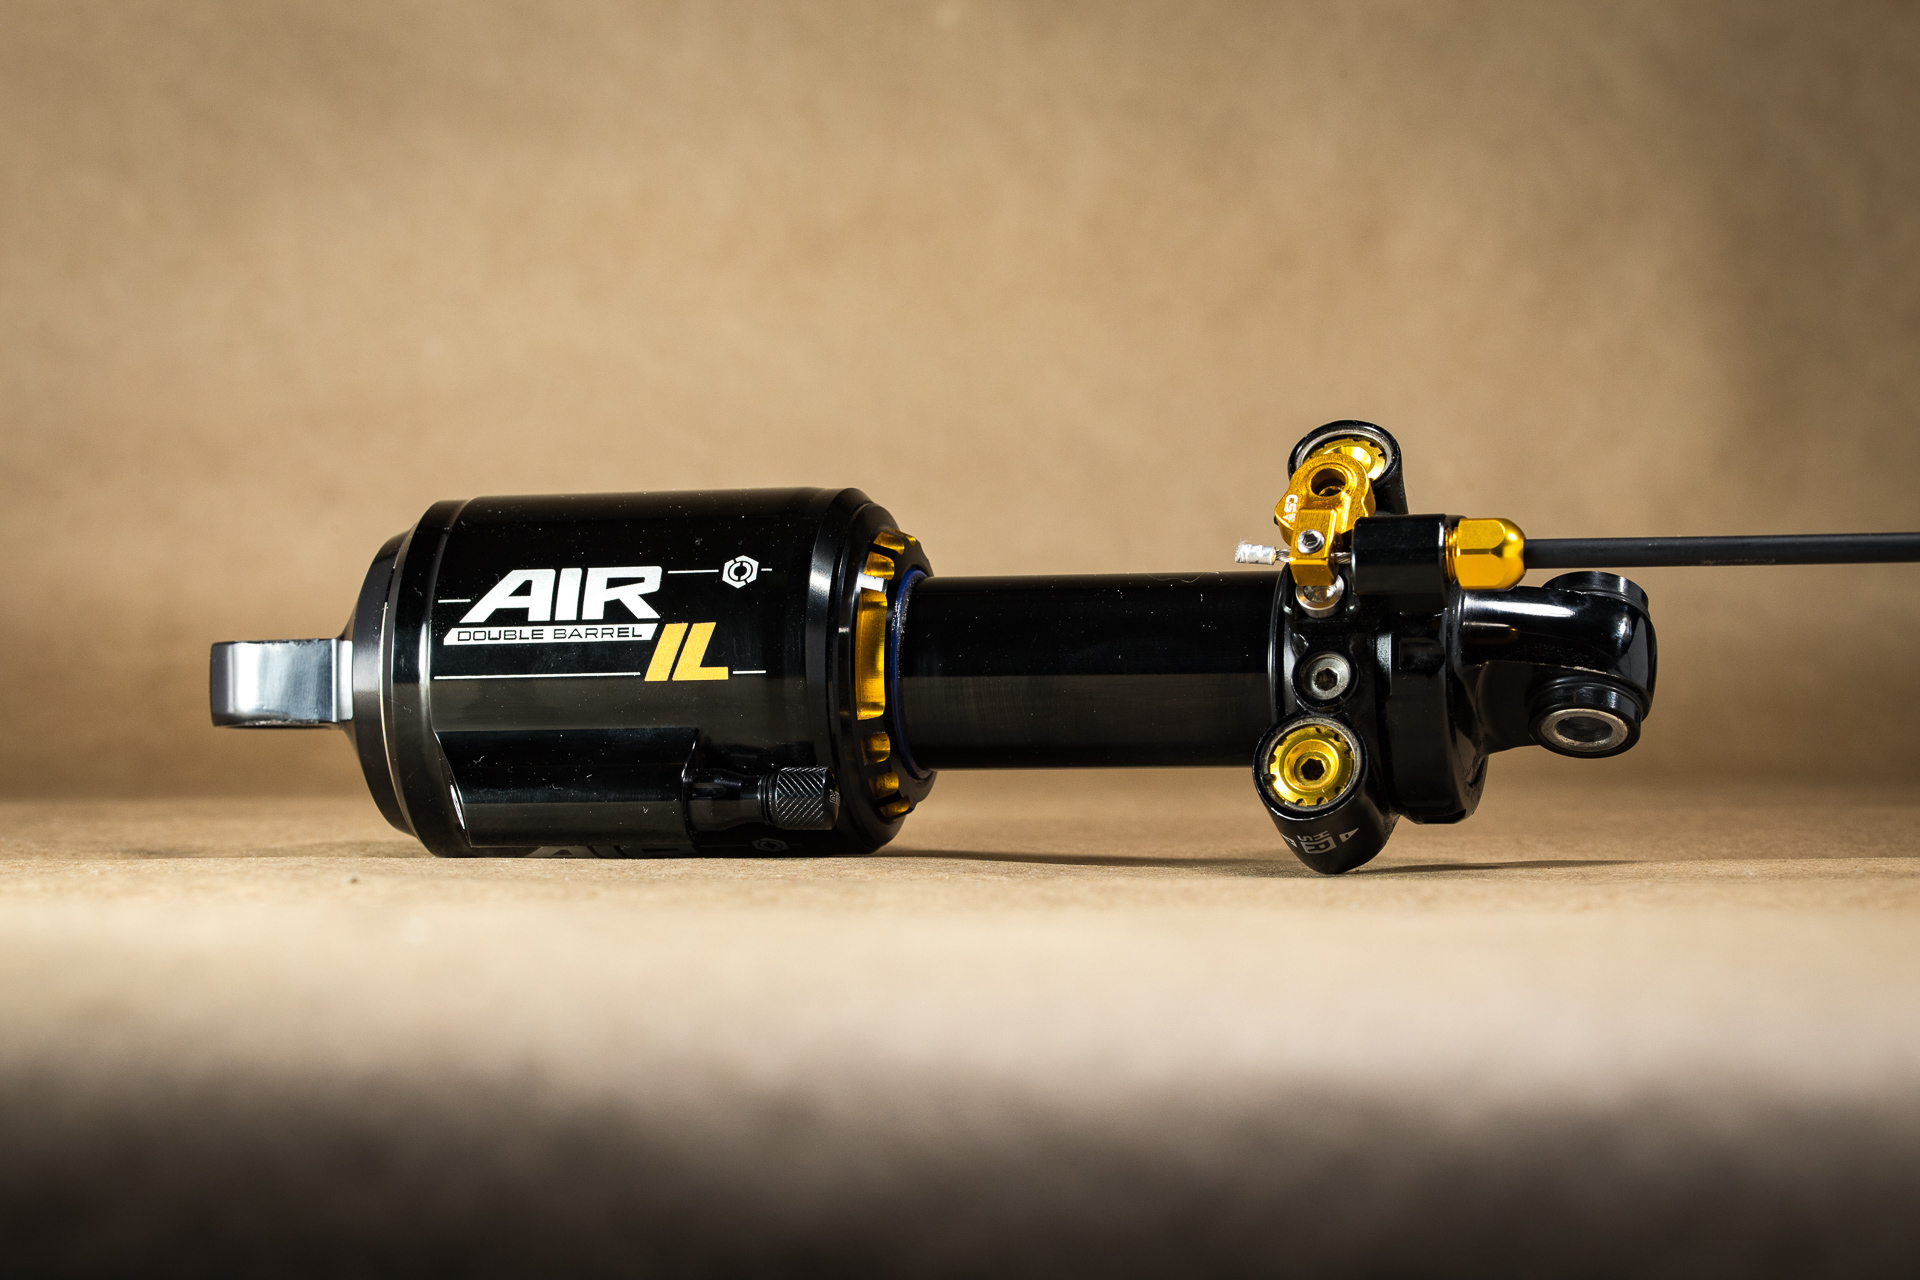 Tested: Cane Creek DB Air IL Mountain Bike Remote-Adjustable Shock